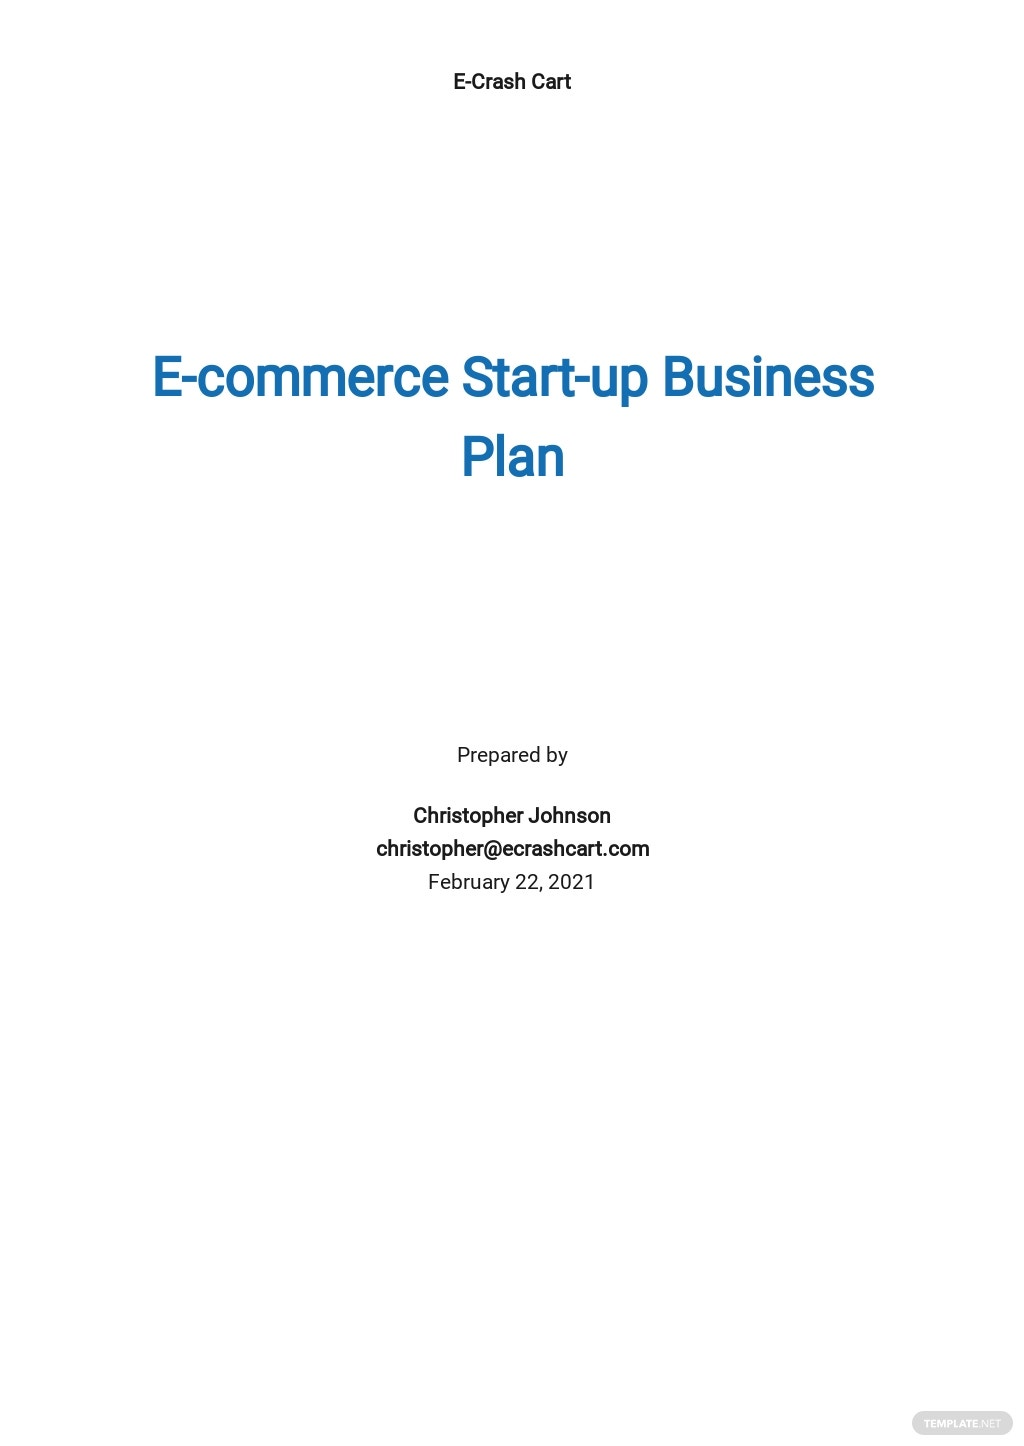 E-commerce Start-up Business Plan Template